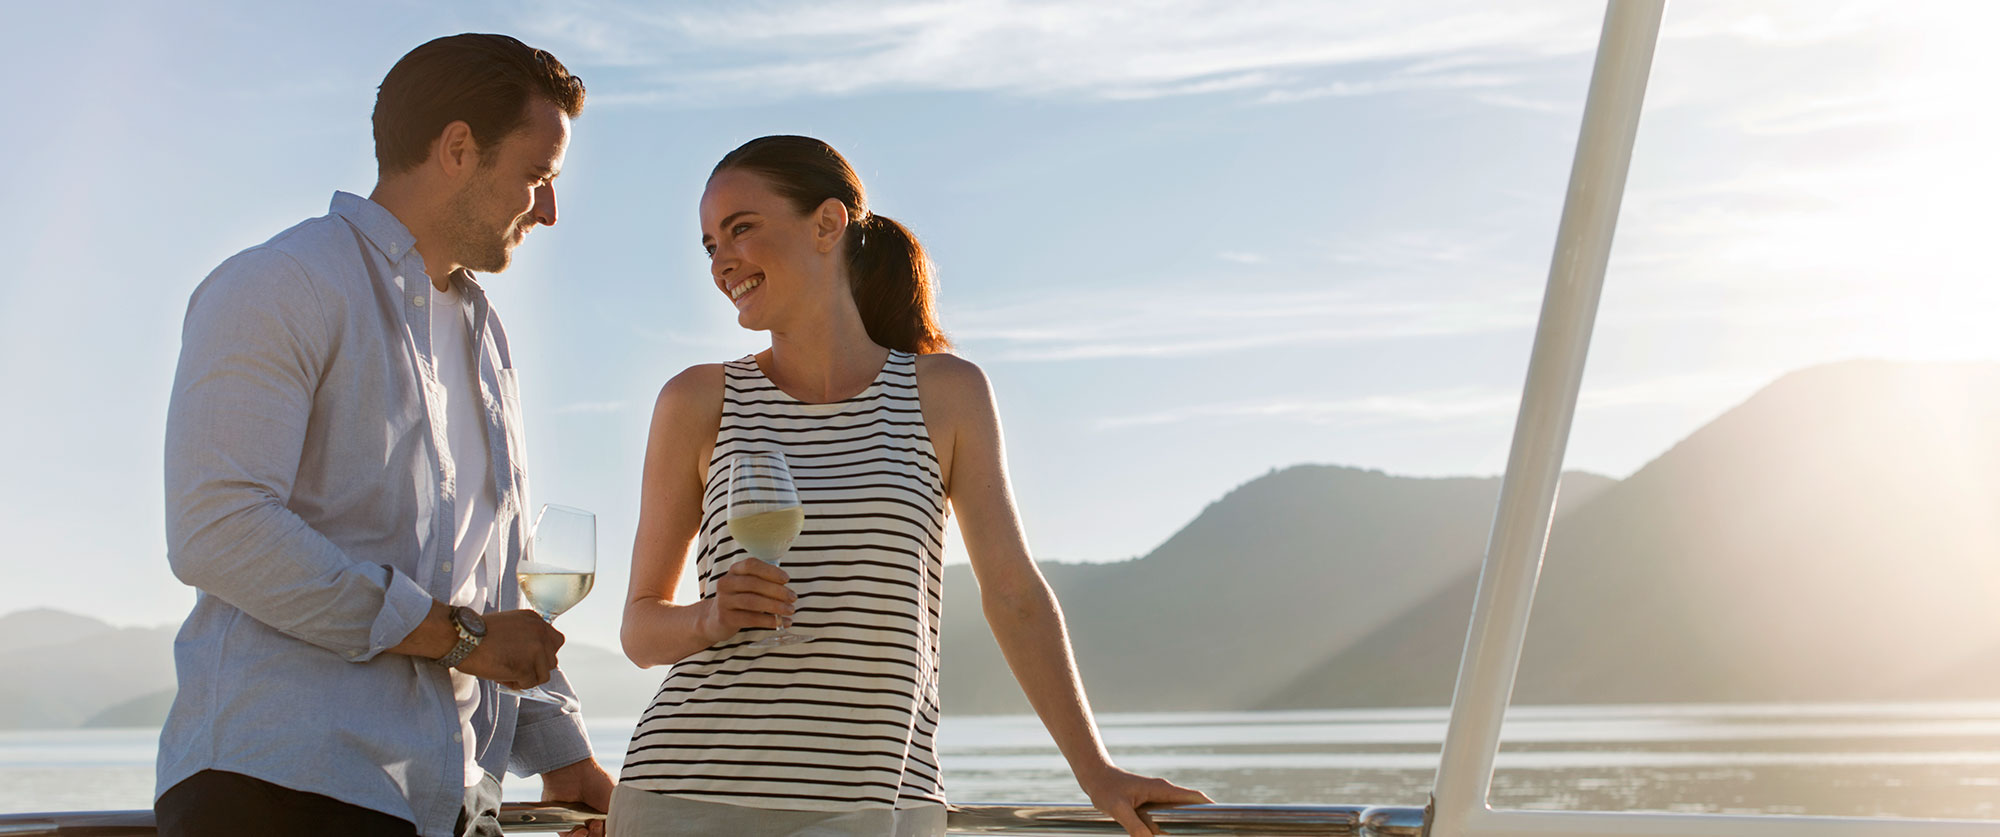 New Zealand Honeymoon Package: Romantic Adventure - Marlborough Sounds